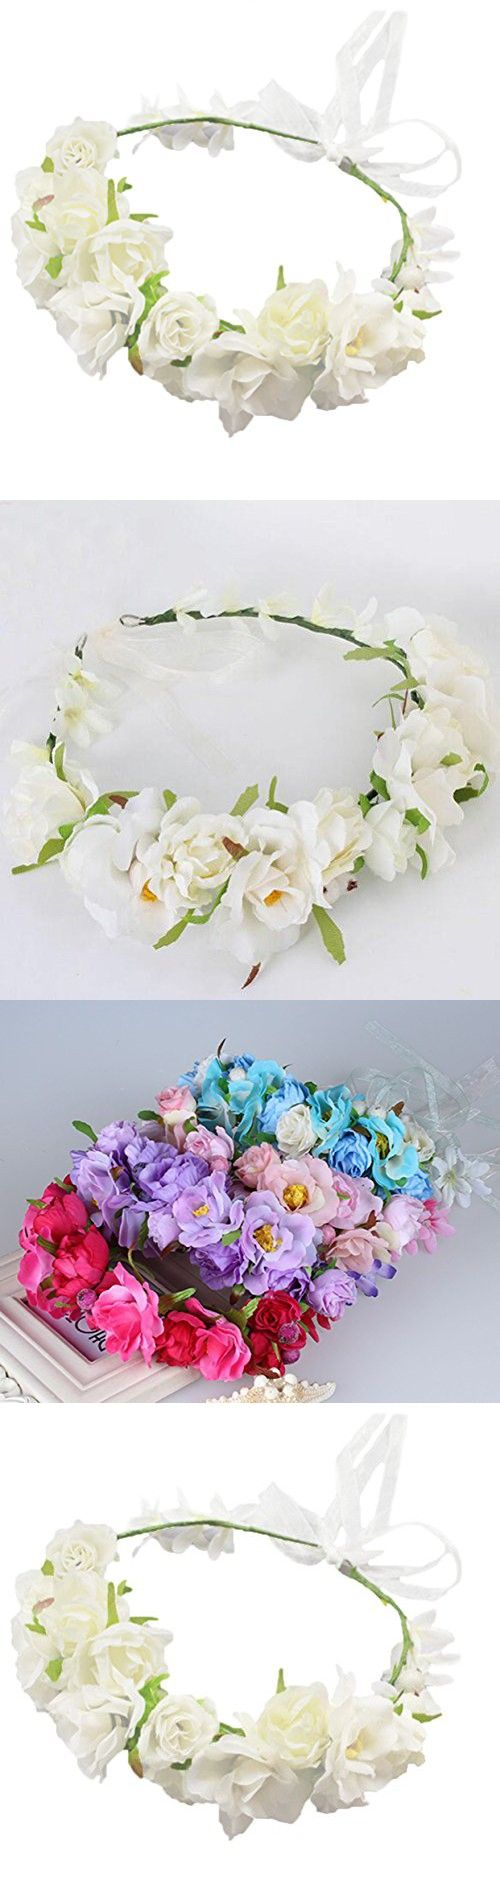 Vivivalue Camellia Berries Flower Wreath Headband Crown Garland with Ribbon Boho for Festival Wedding White